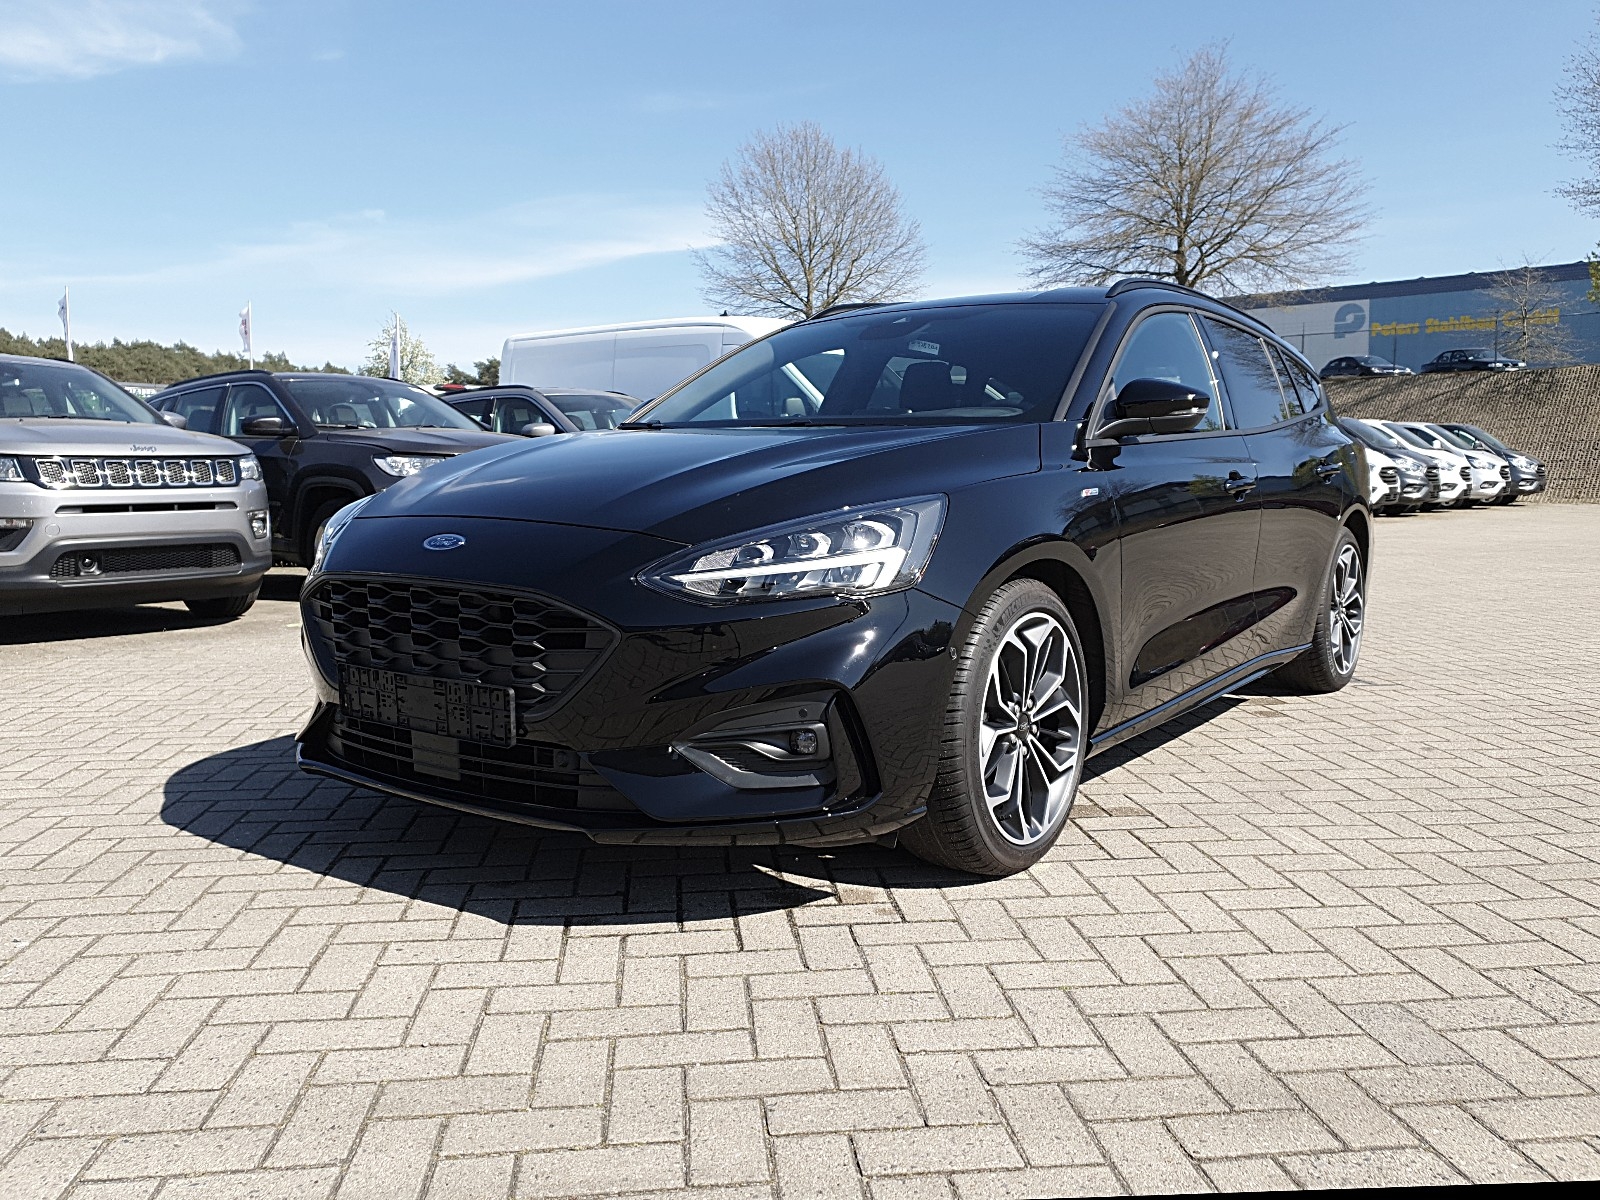 FORD FOCUS Turnier 1.0 EcoBoost 125PS ST-Line Klima Voll-LED Sitzheizung Le Autosoft BV, Enschede